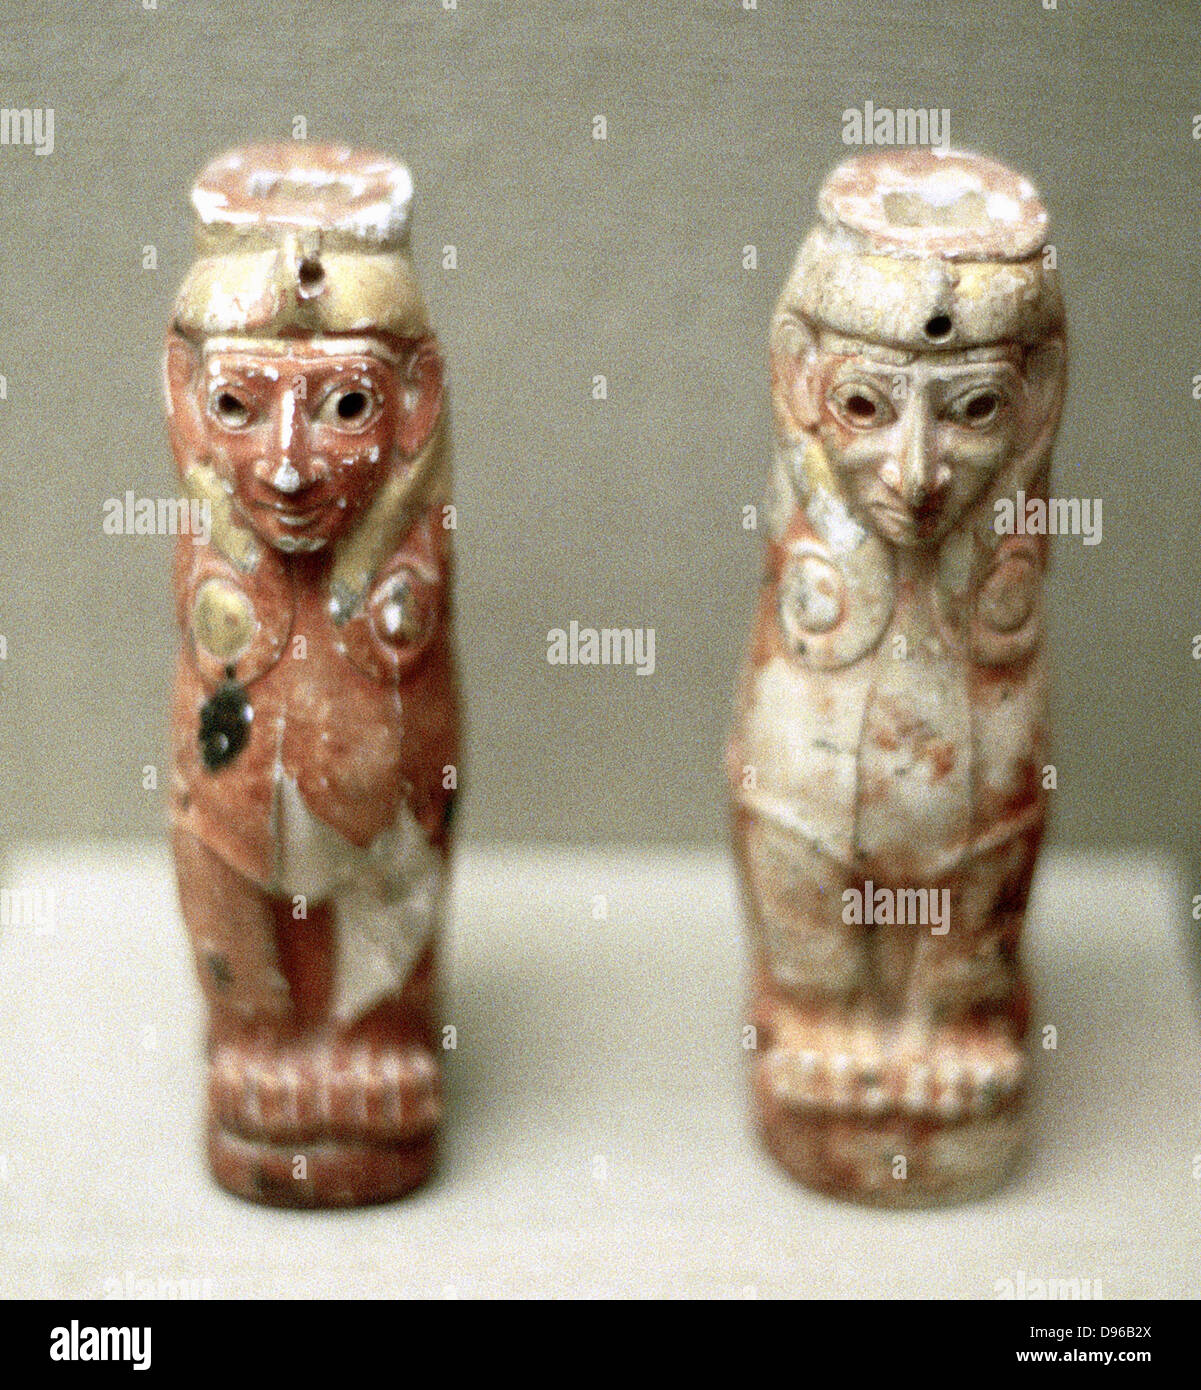 Artefacts (Sphinx figures) from Turkey, 1800 BC - Stock Image